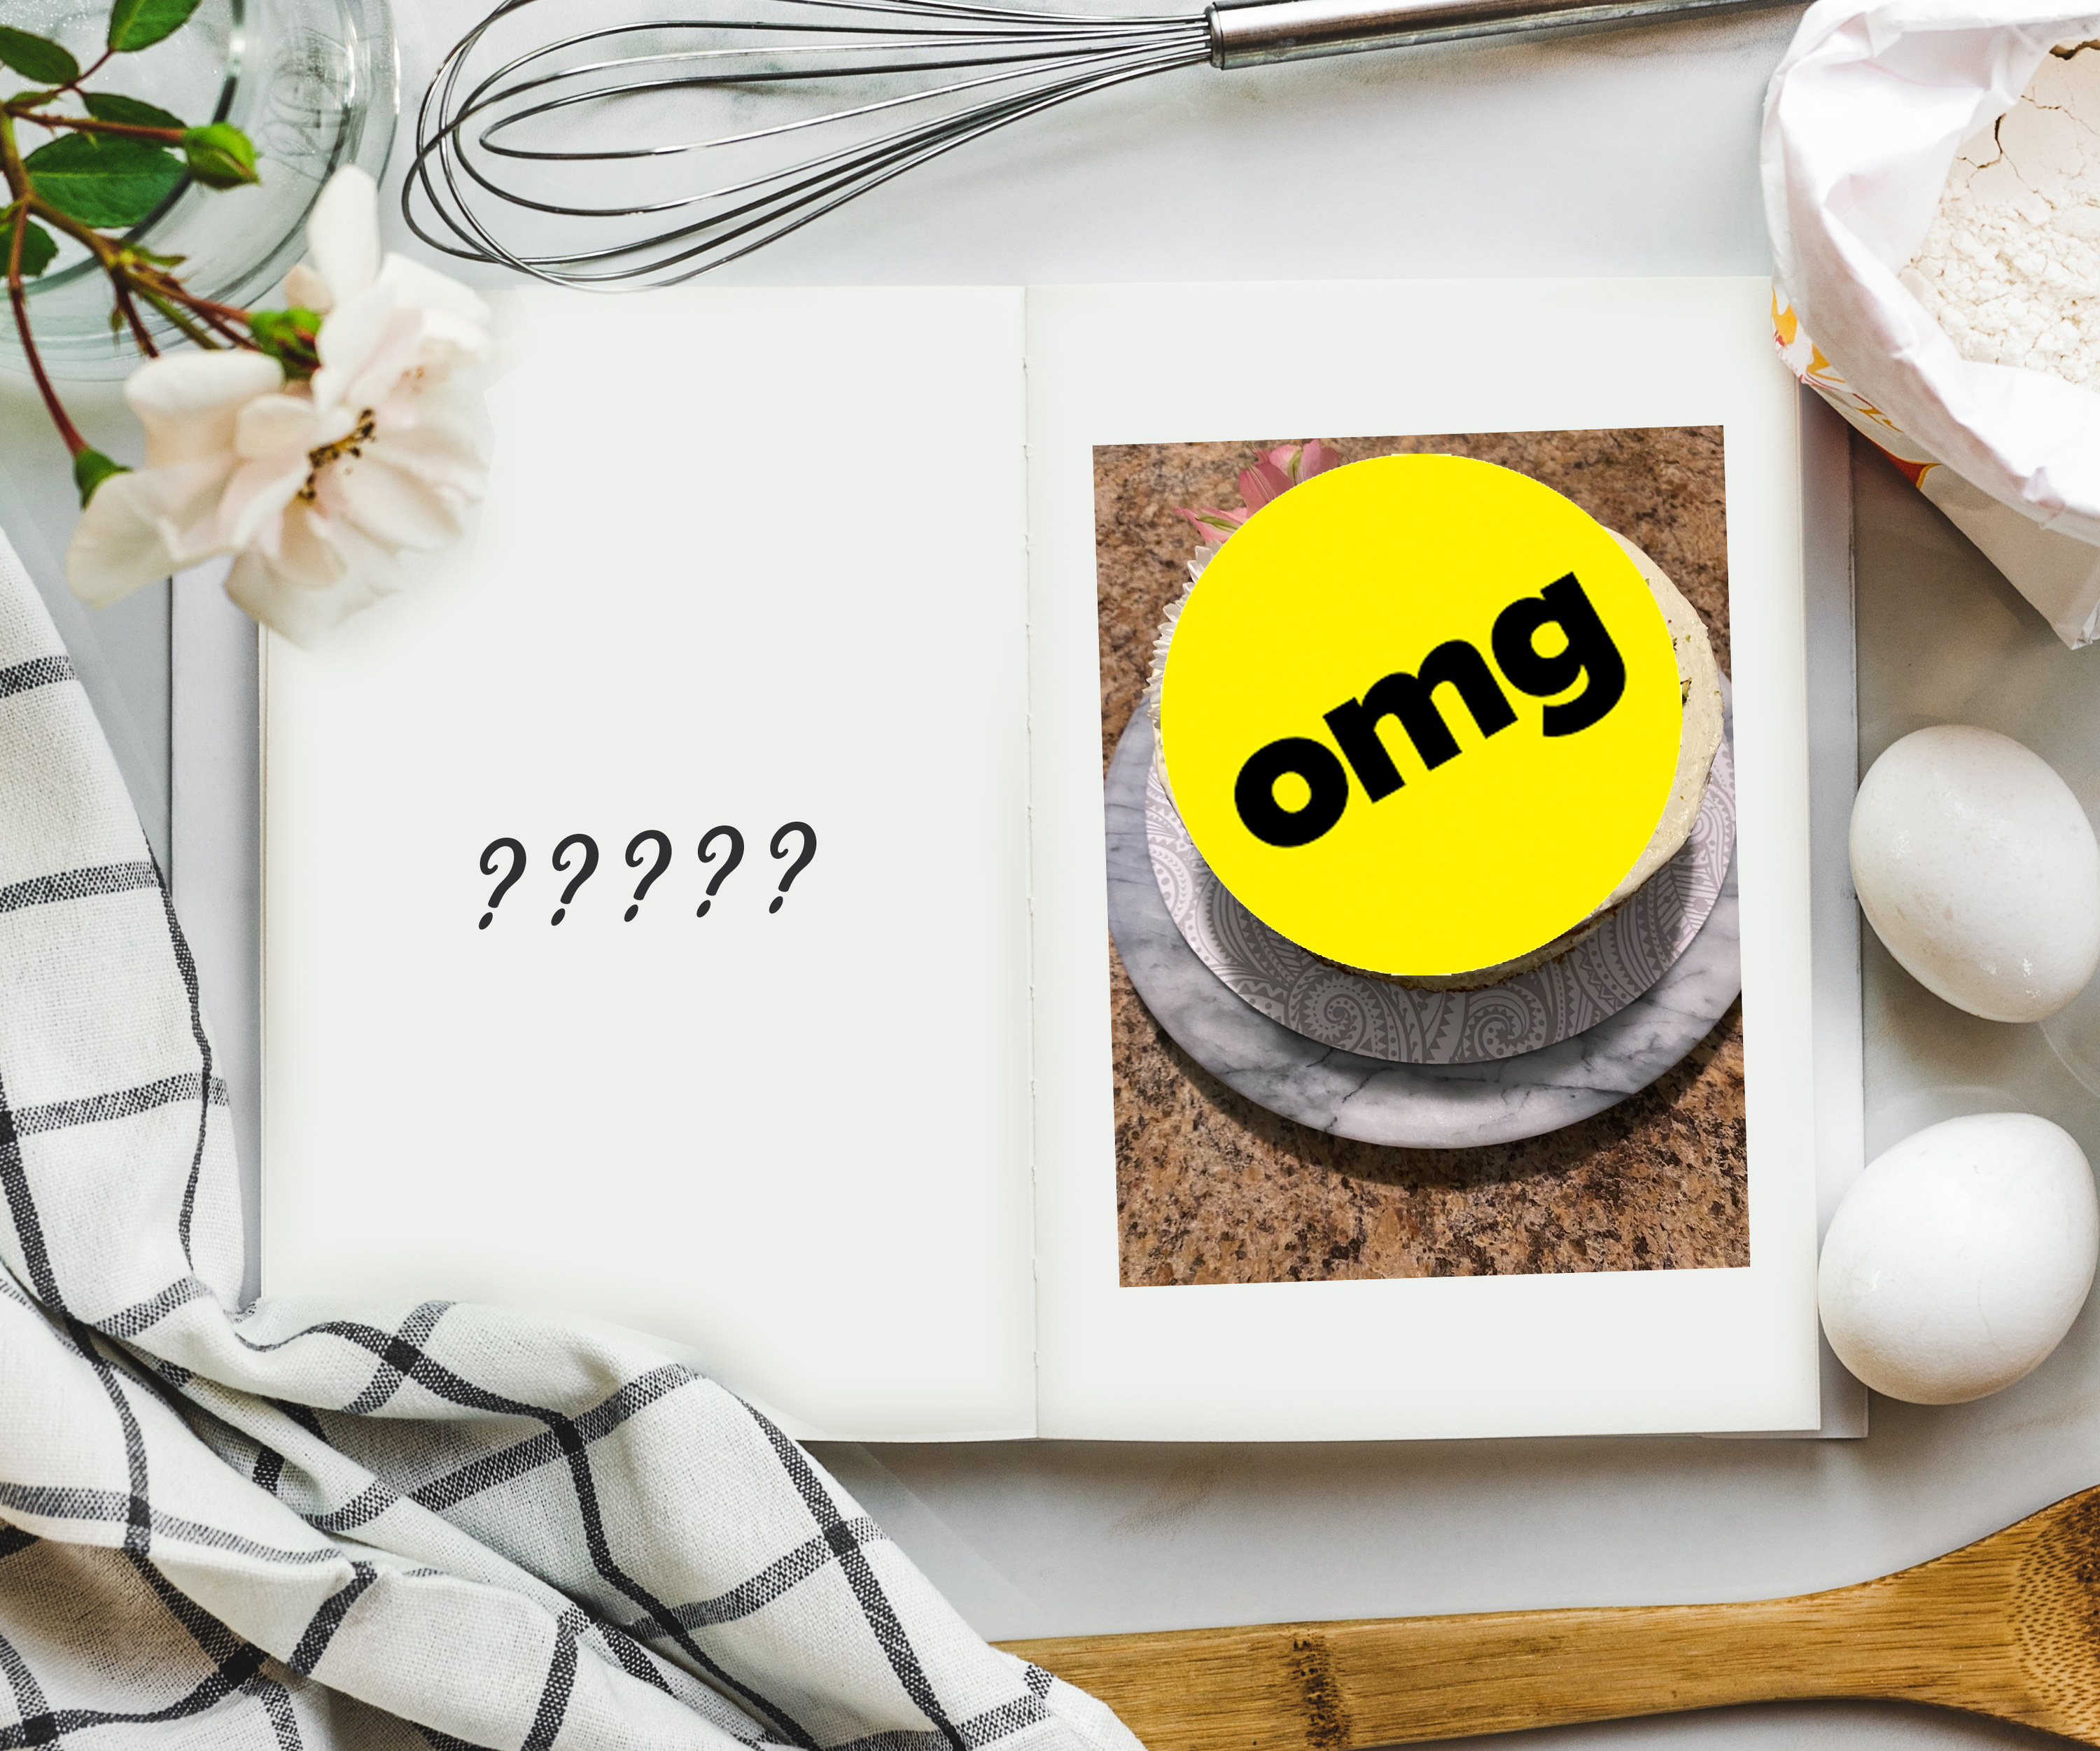 An overhead shot of cookbook on a table surrounded by ingredients and a photo on the inside that is covered with a sticker that says OMG.